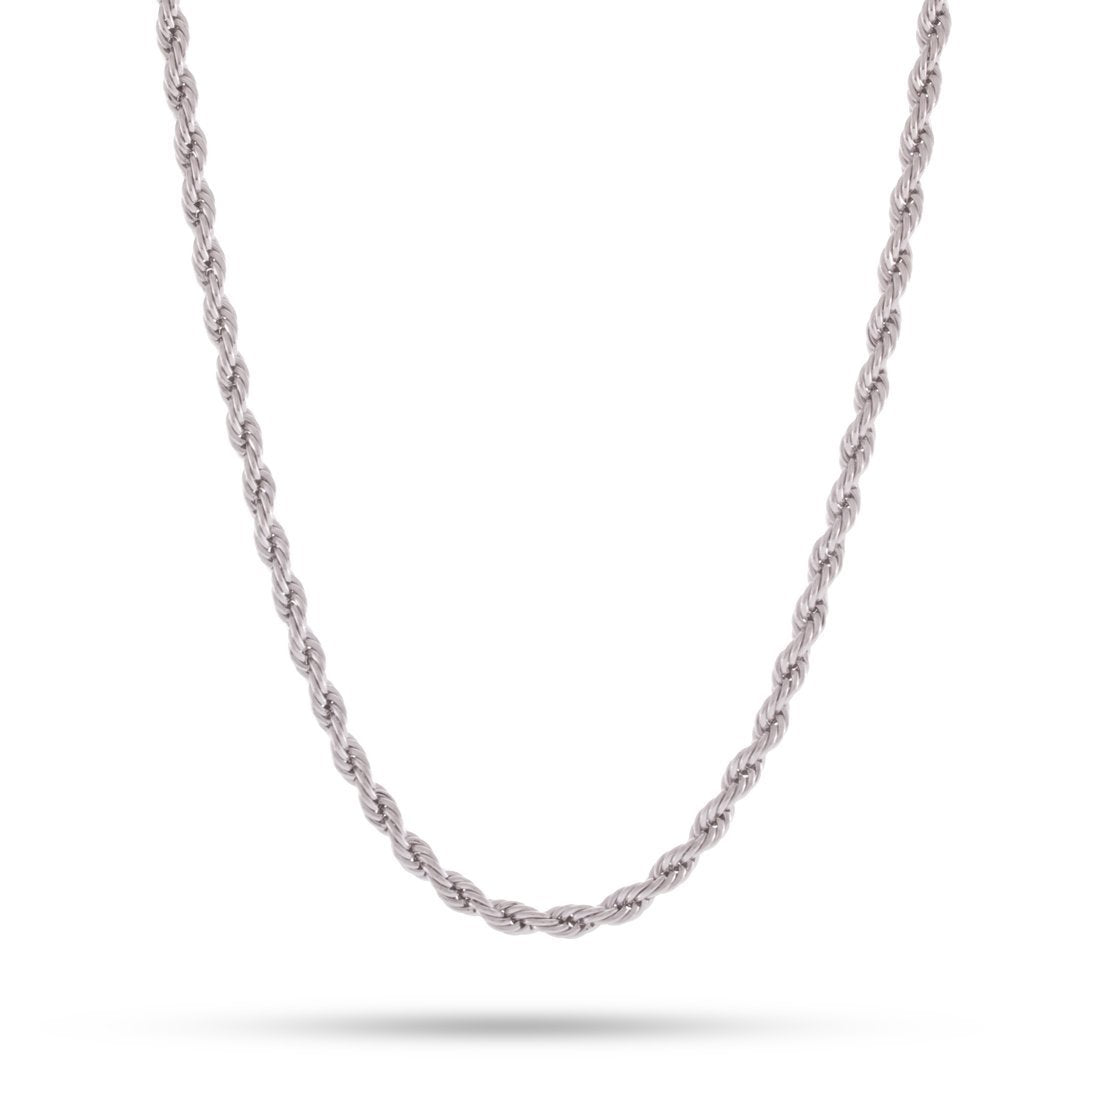 4mm, White Gold Stainless Steel Rope Chain